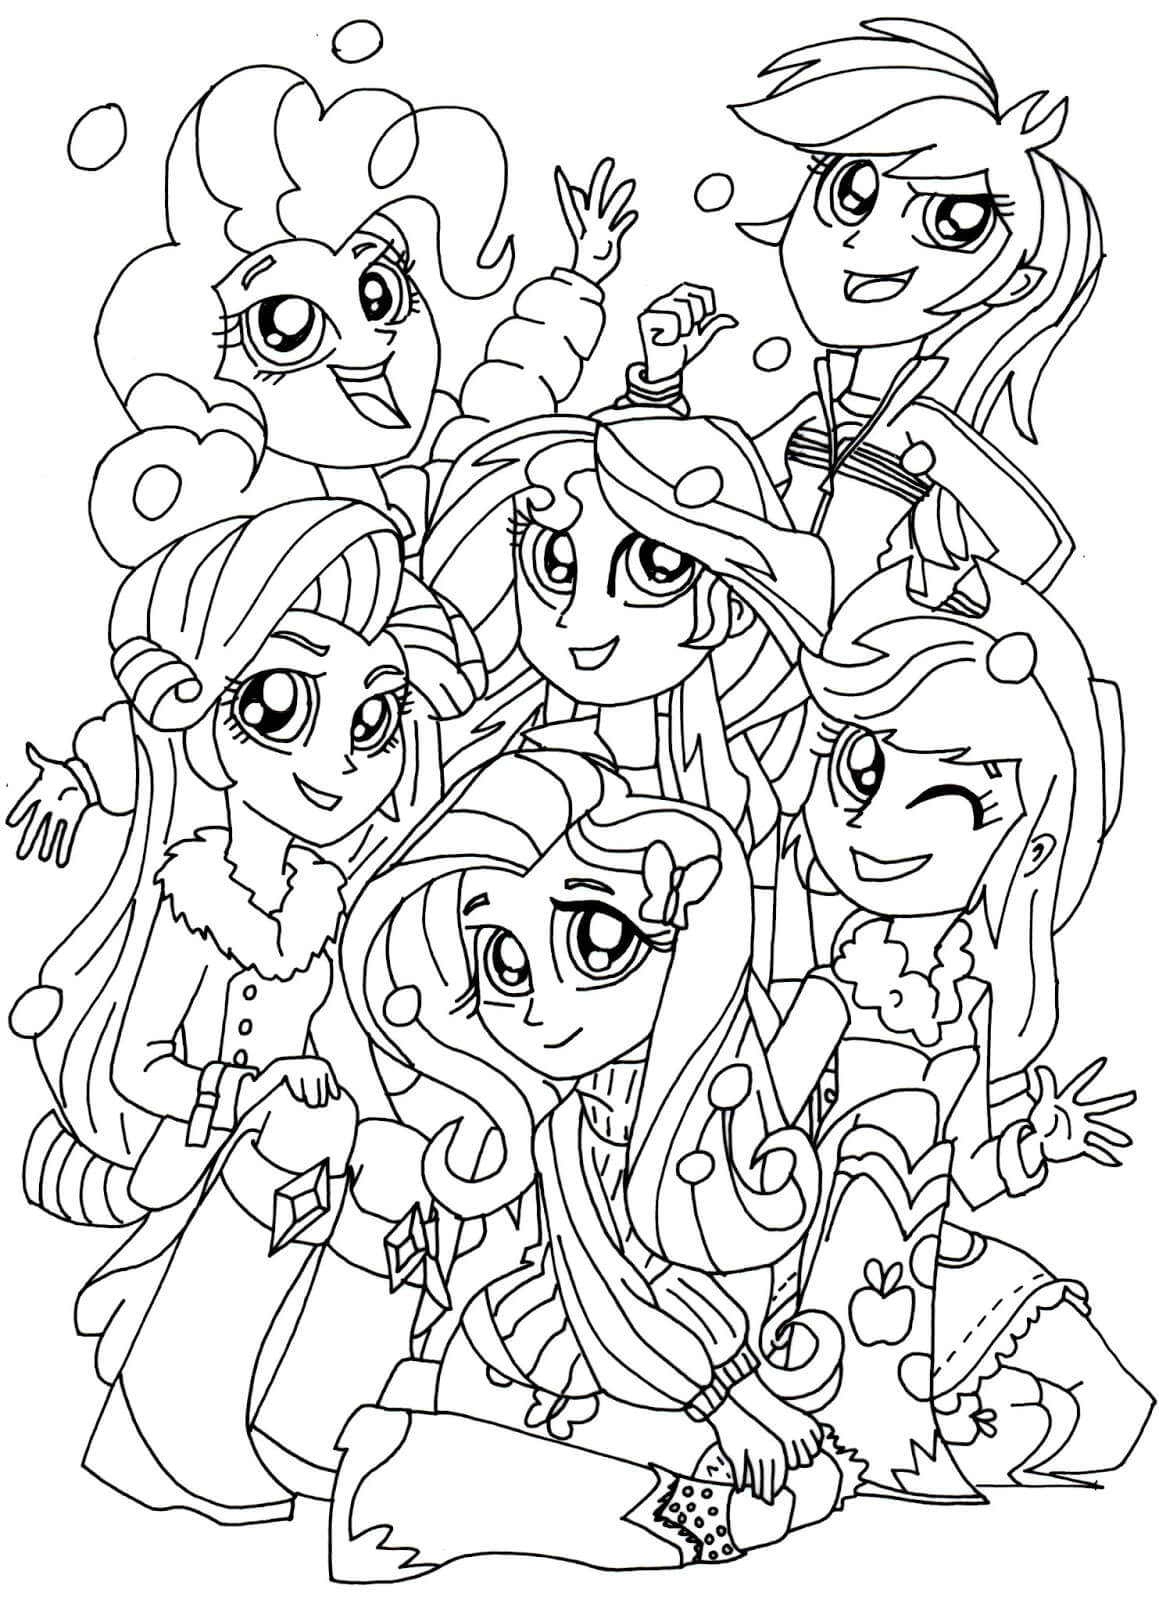 Mlp Eg Coloring Pages At Getcolorings